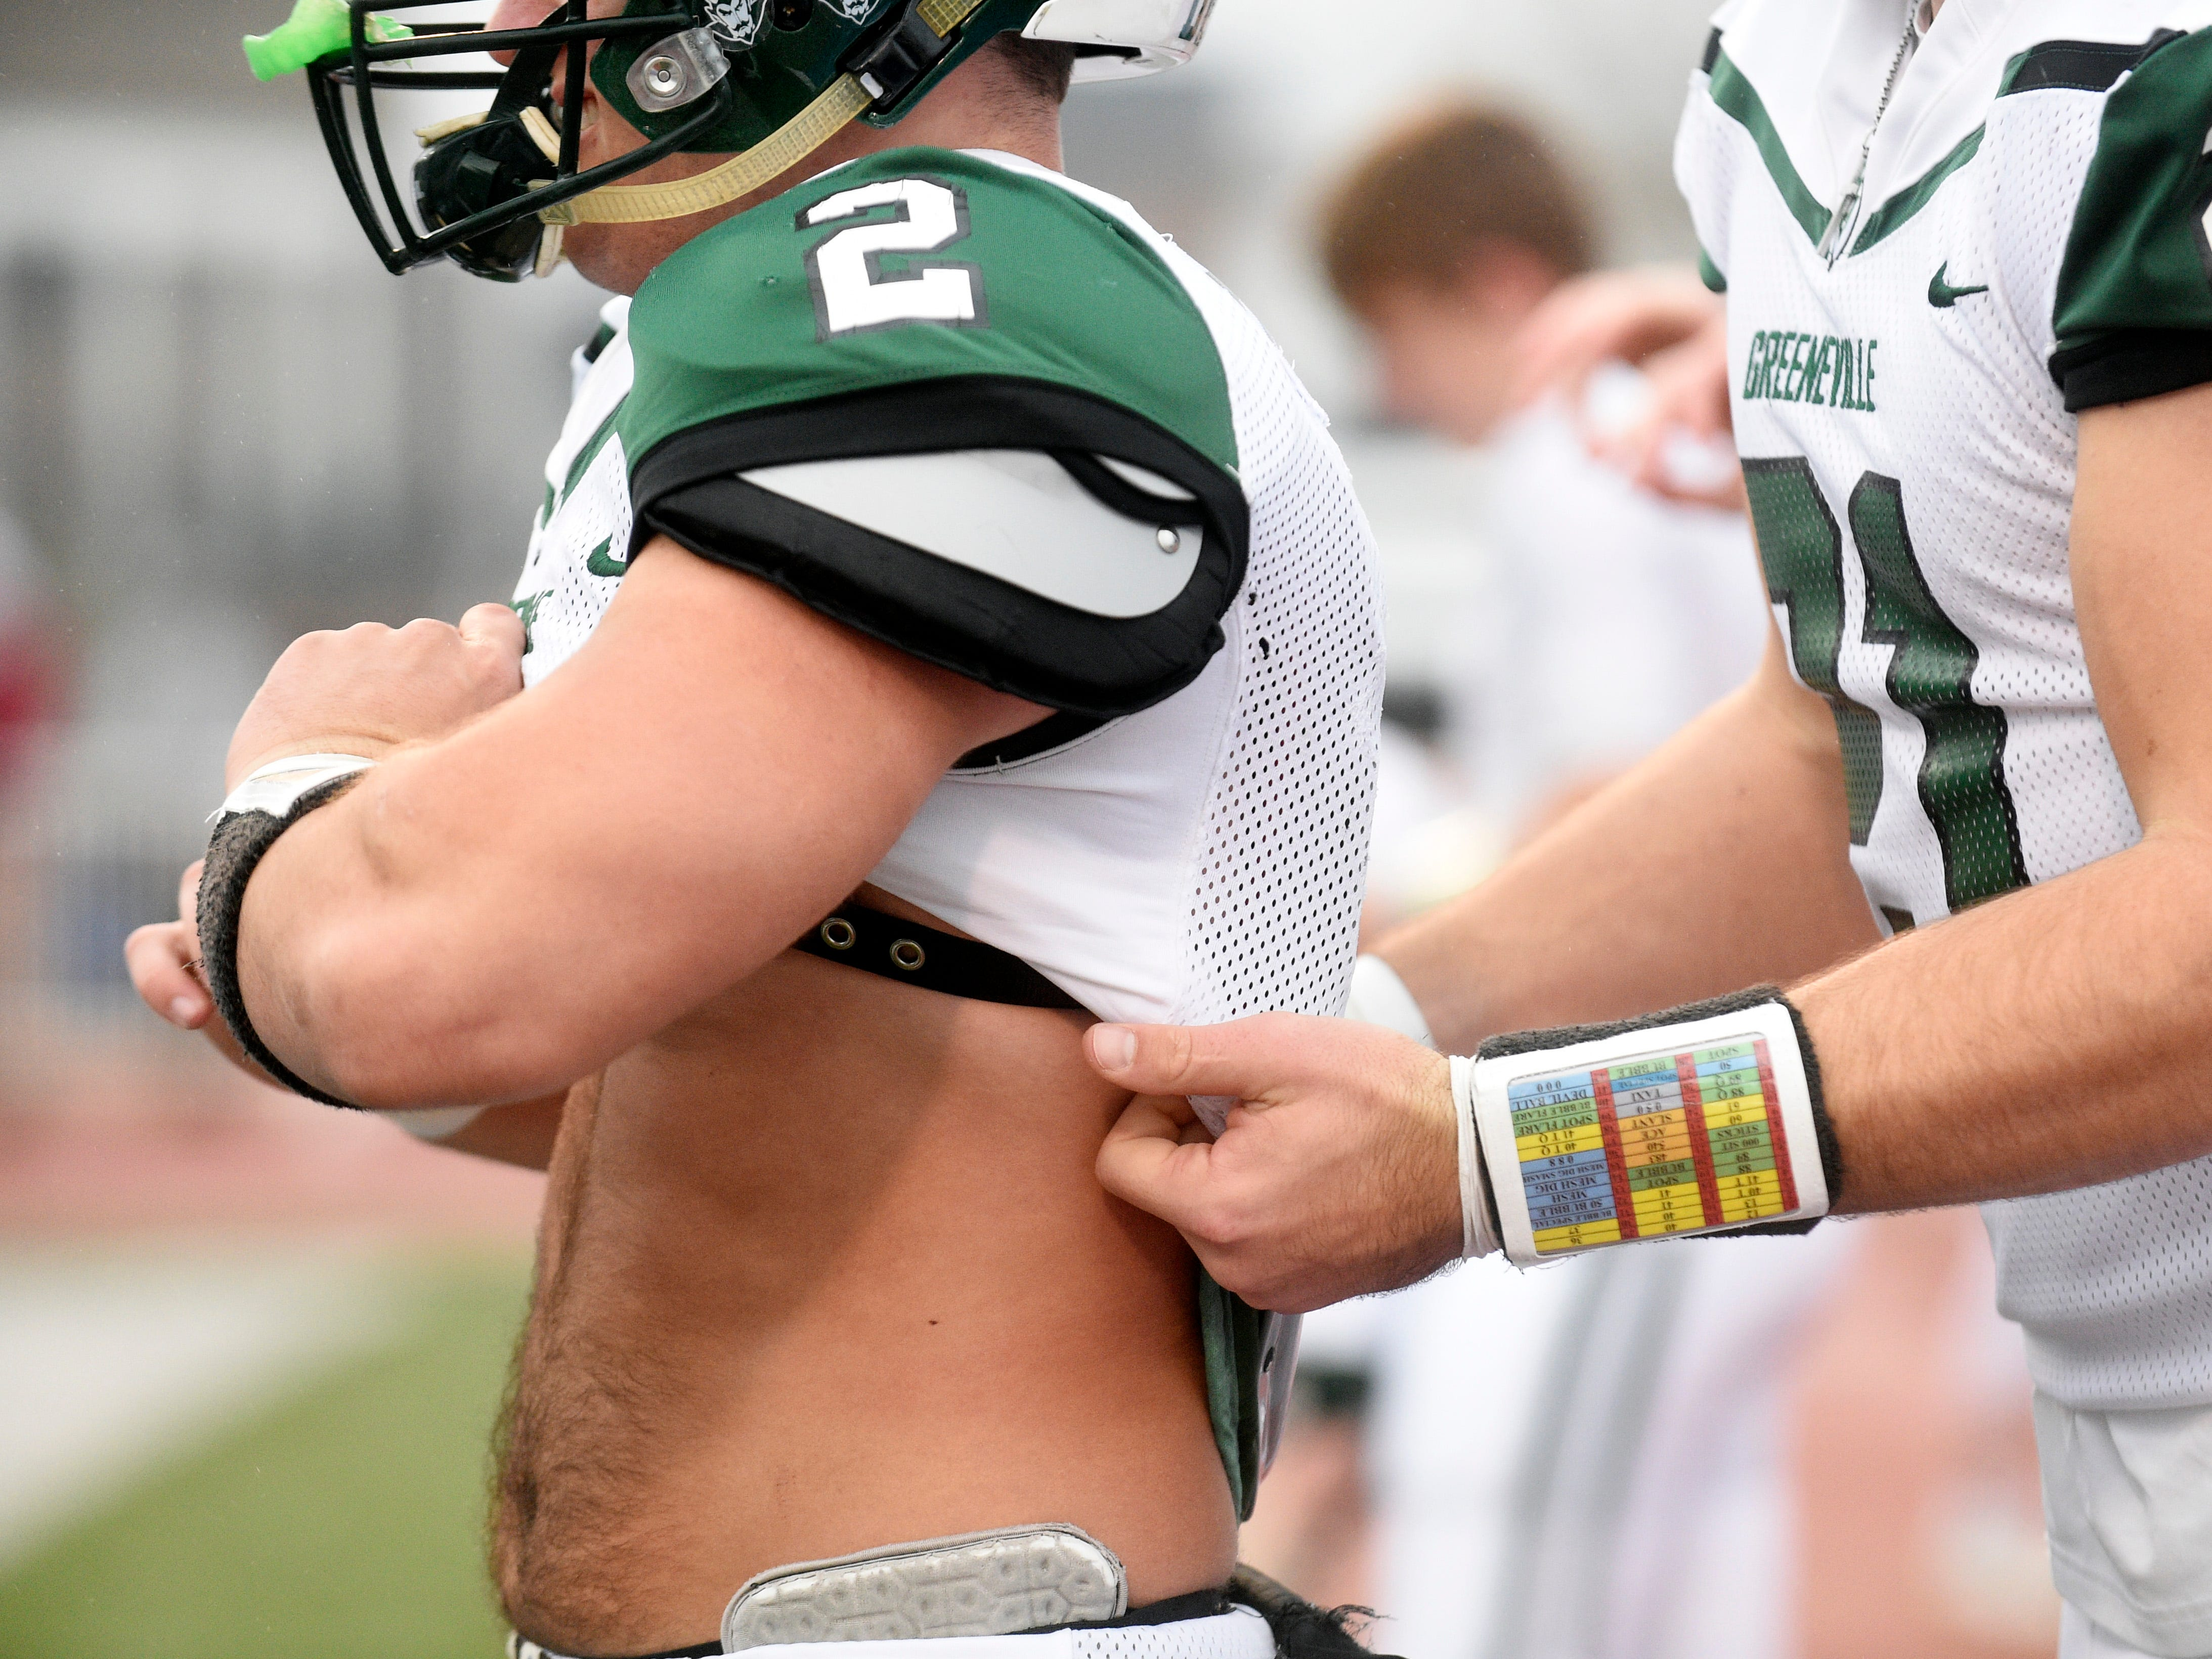 Greeneville's Jaevon Gillespie (20)  helps teammate Cade Ballard (2) get ready for the Class 4A BlueCross Bowl state championship at Tennessee Tech's Tucker Stadium in Cookeville, Tenn., on Thursday, Nov. 29, 2018.